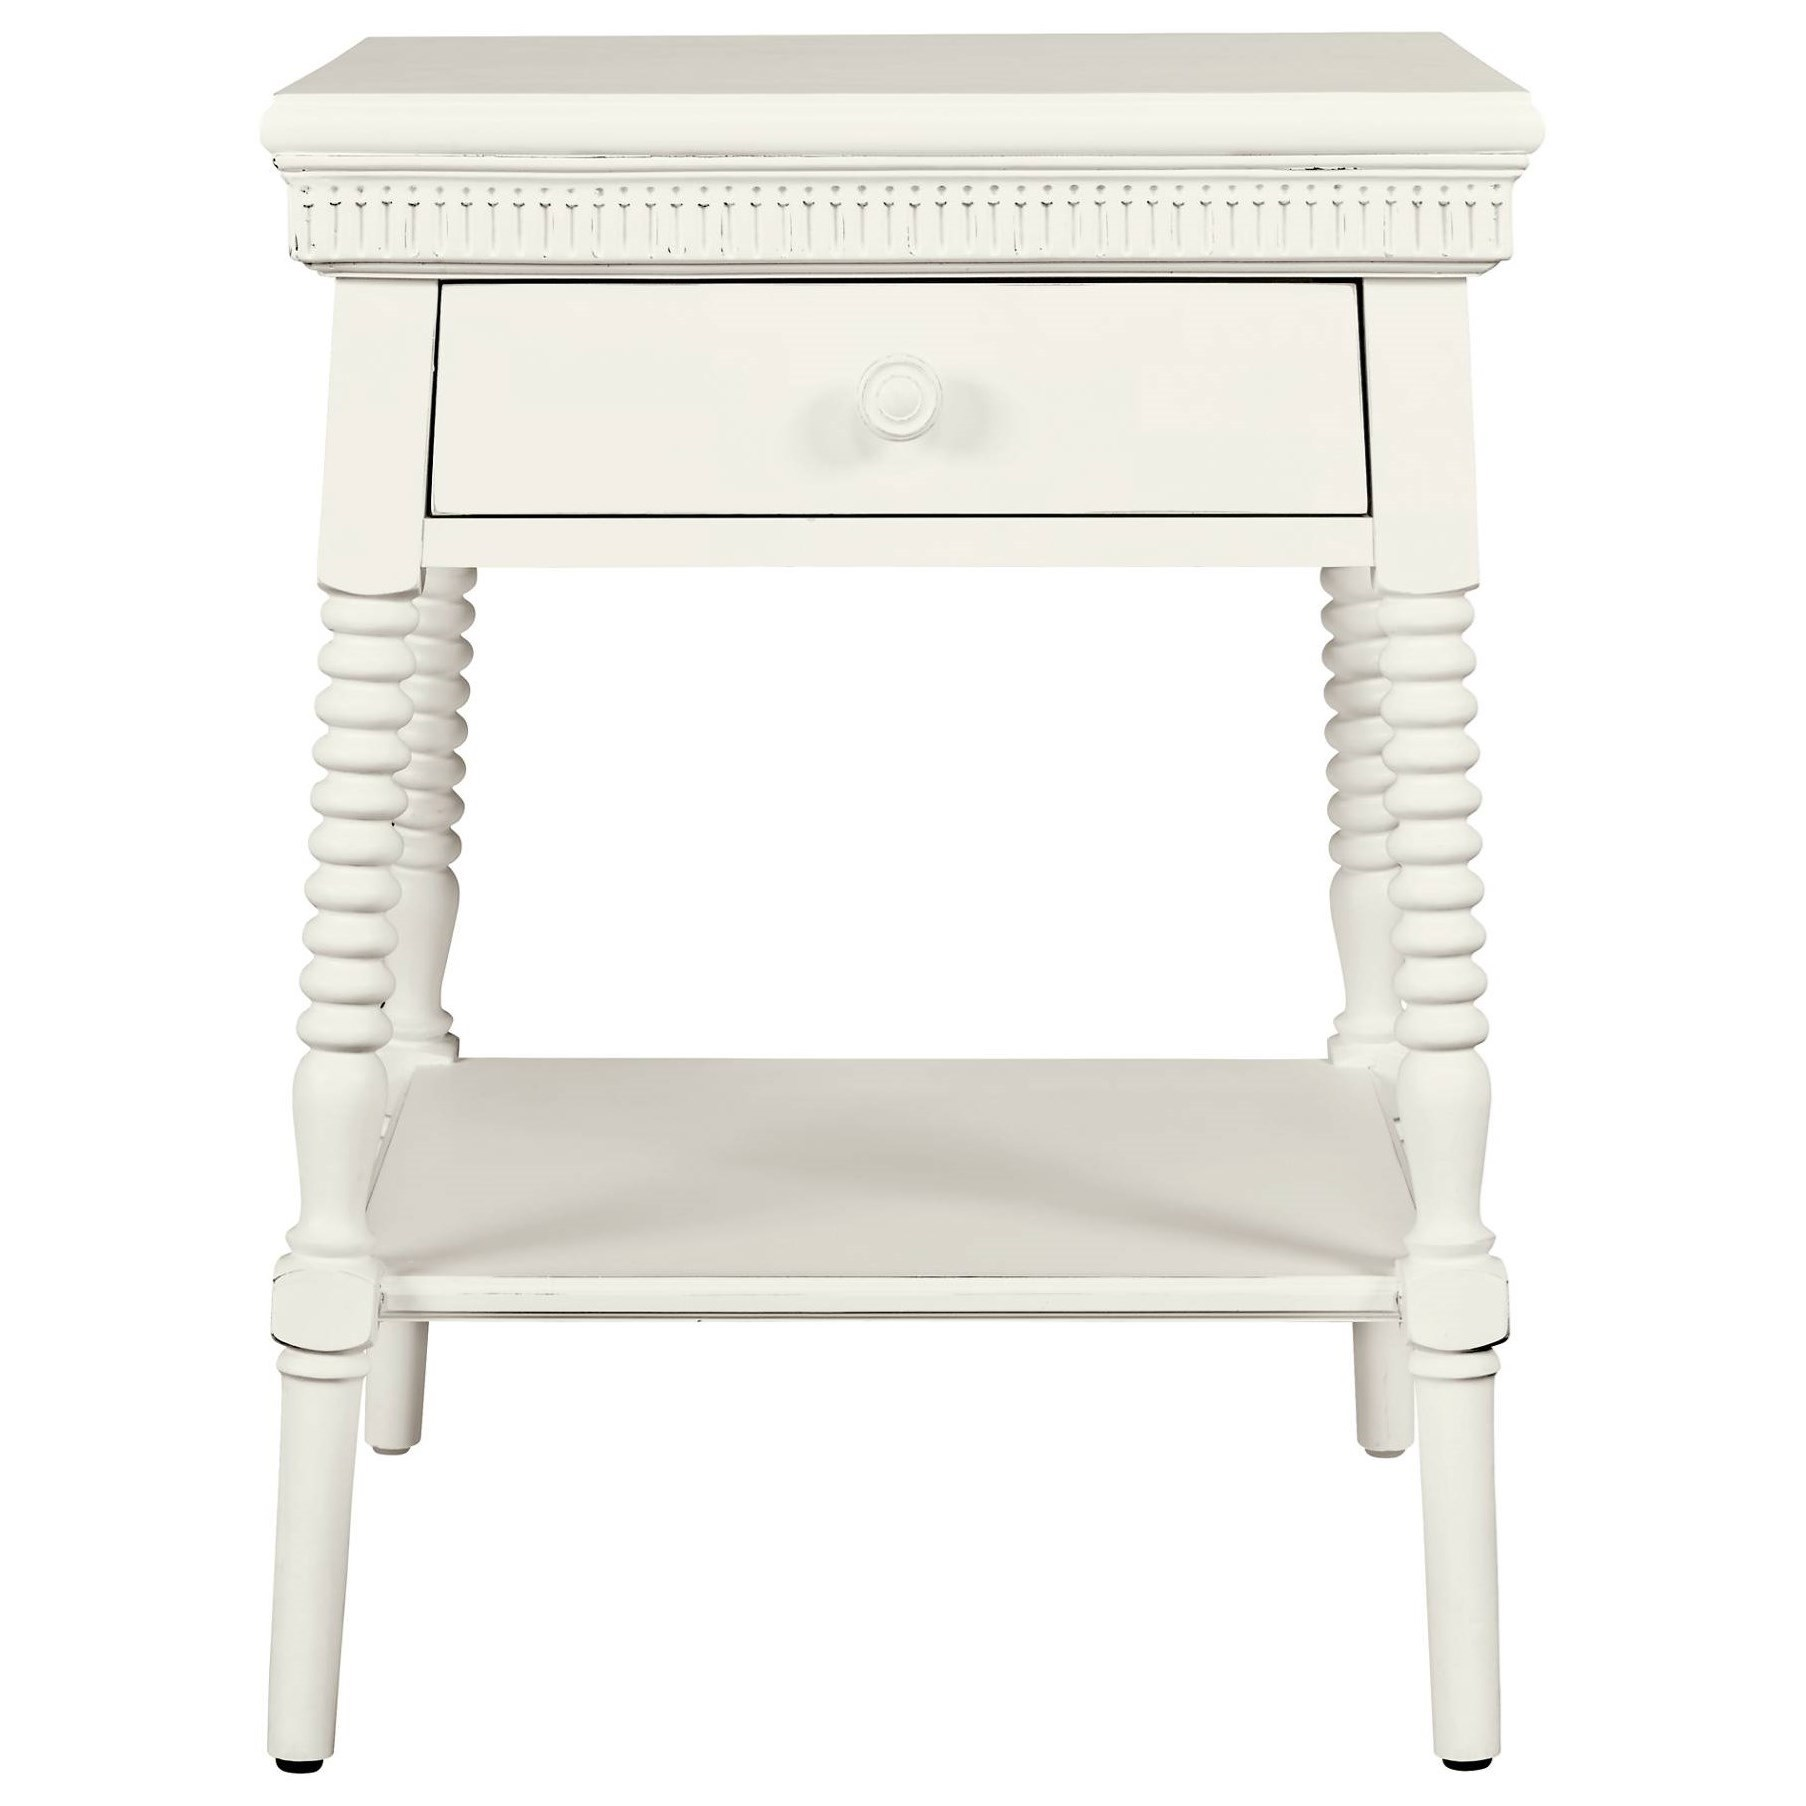 Stone & Leigh Furniture Smiling Hill Bedside Table - Item Number: 560-23-80